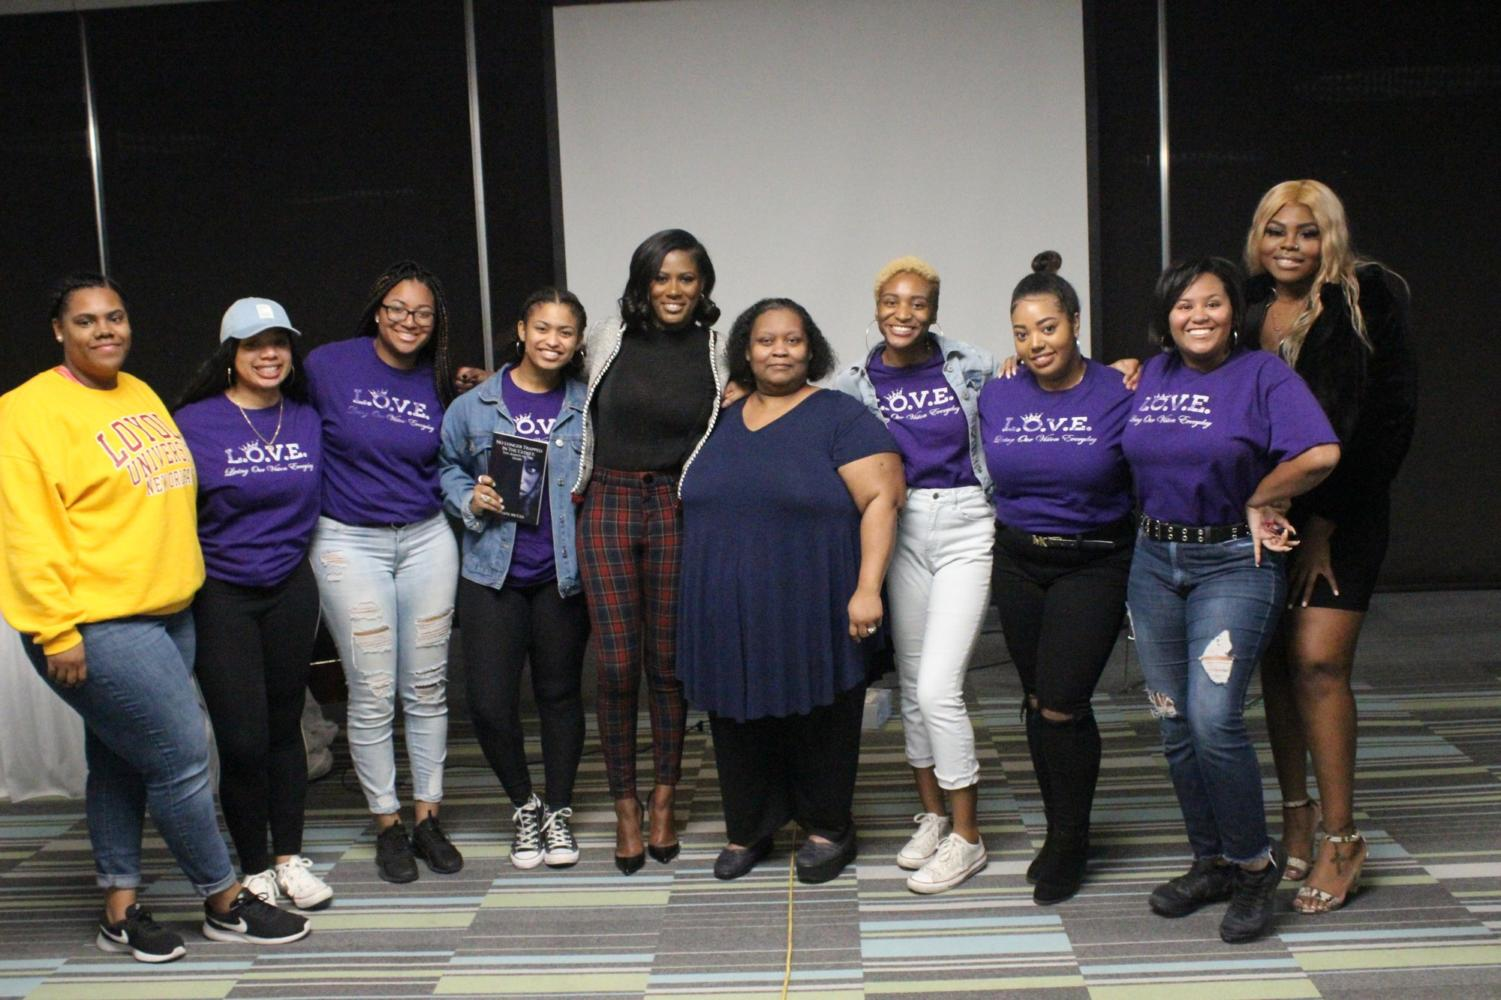 Members of Loyola's L.O.V.E. chapter pose with author Asante McGee on Jan. 29. McGee spoke about her experiences with R. Kelly and abuse. Photo credit: Maia Moses